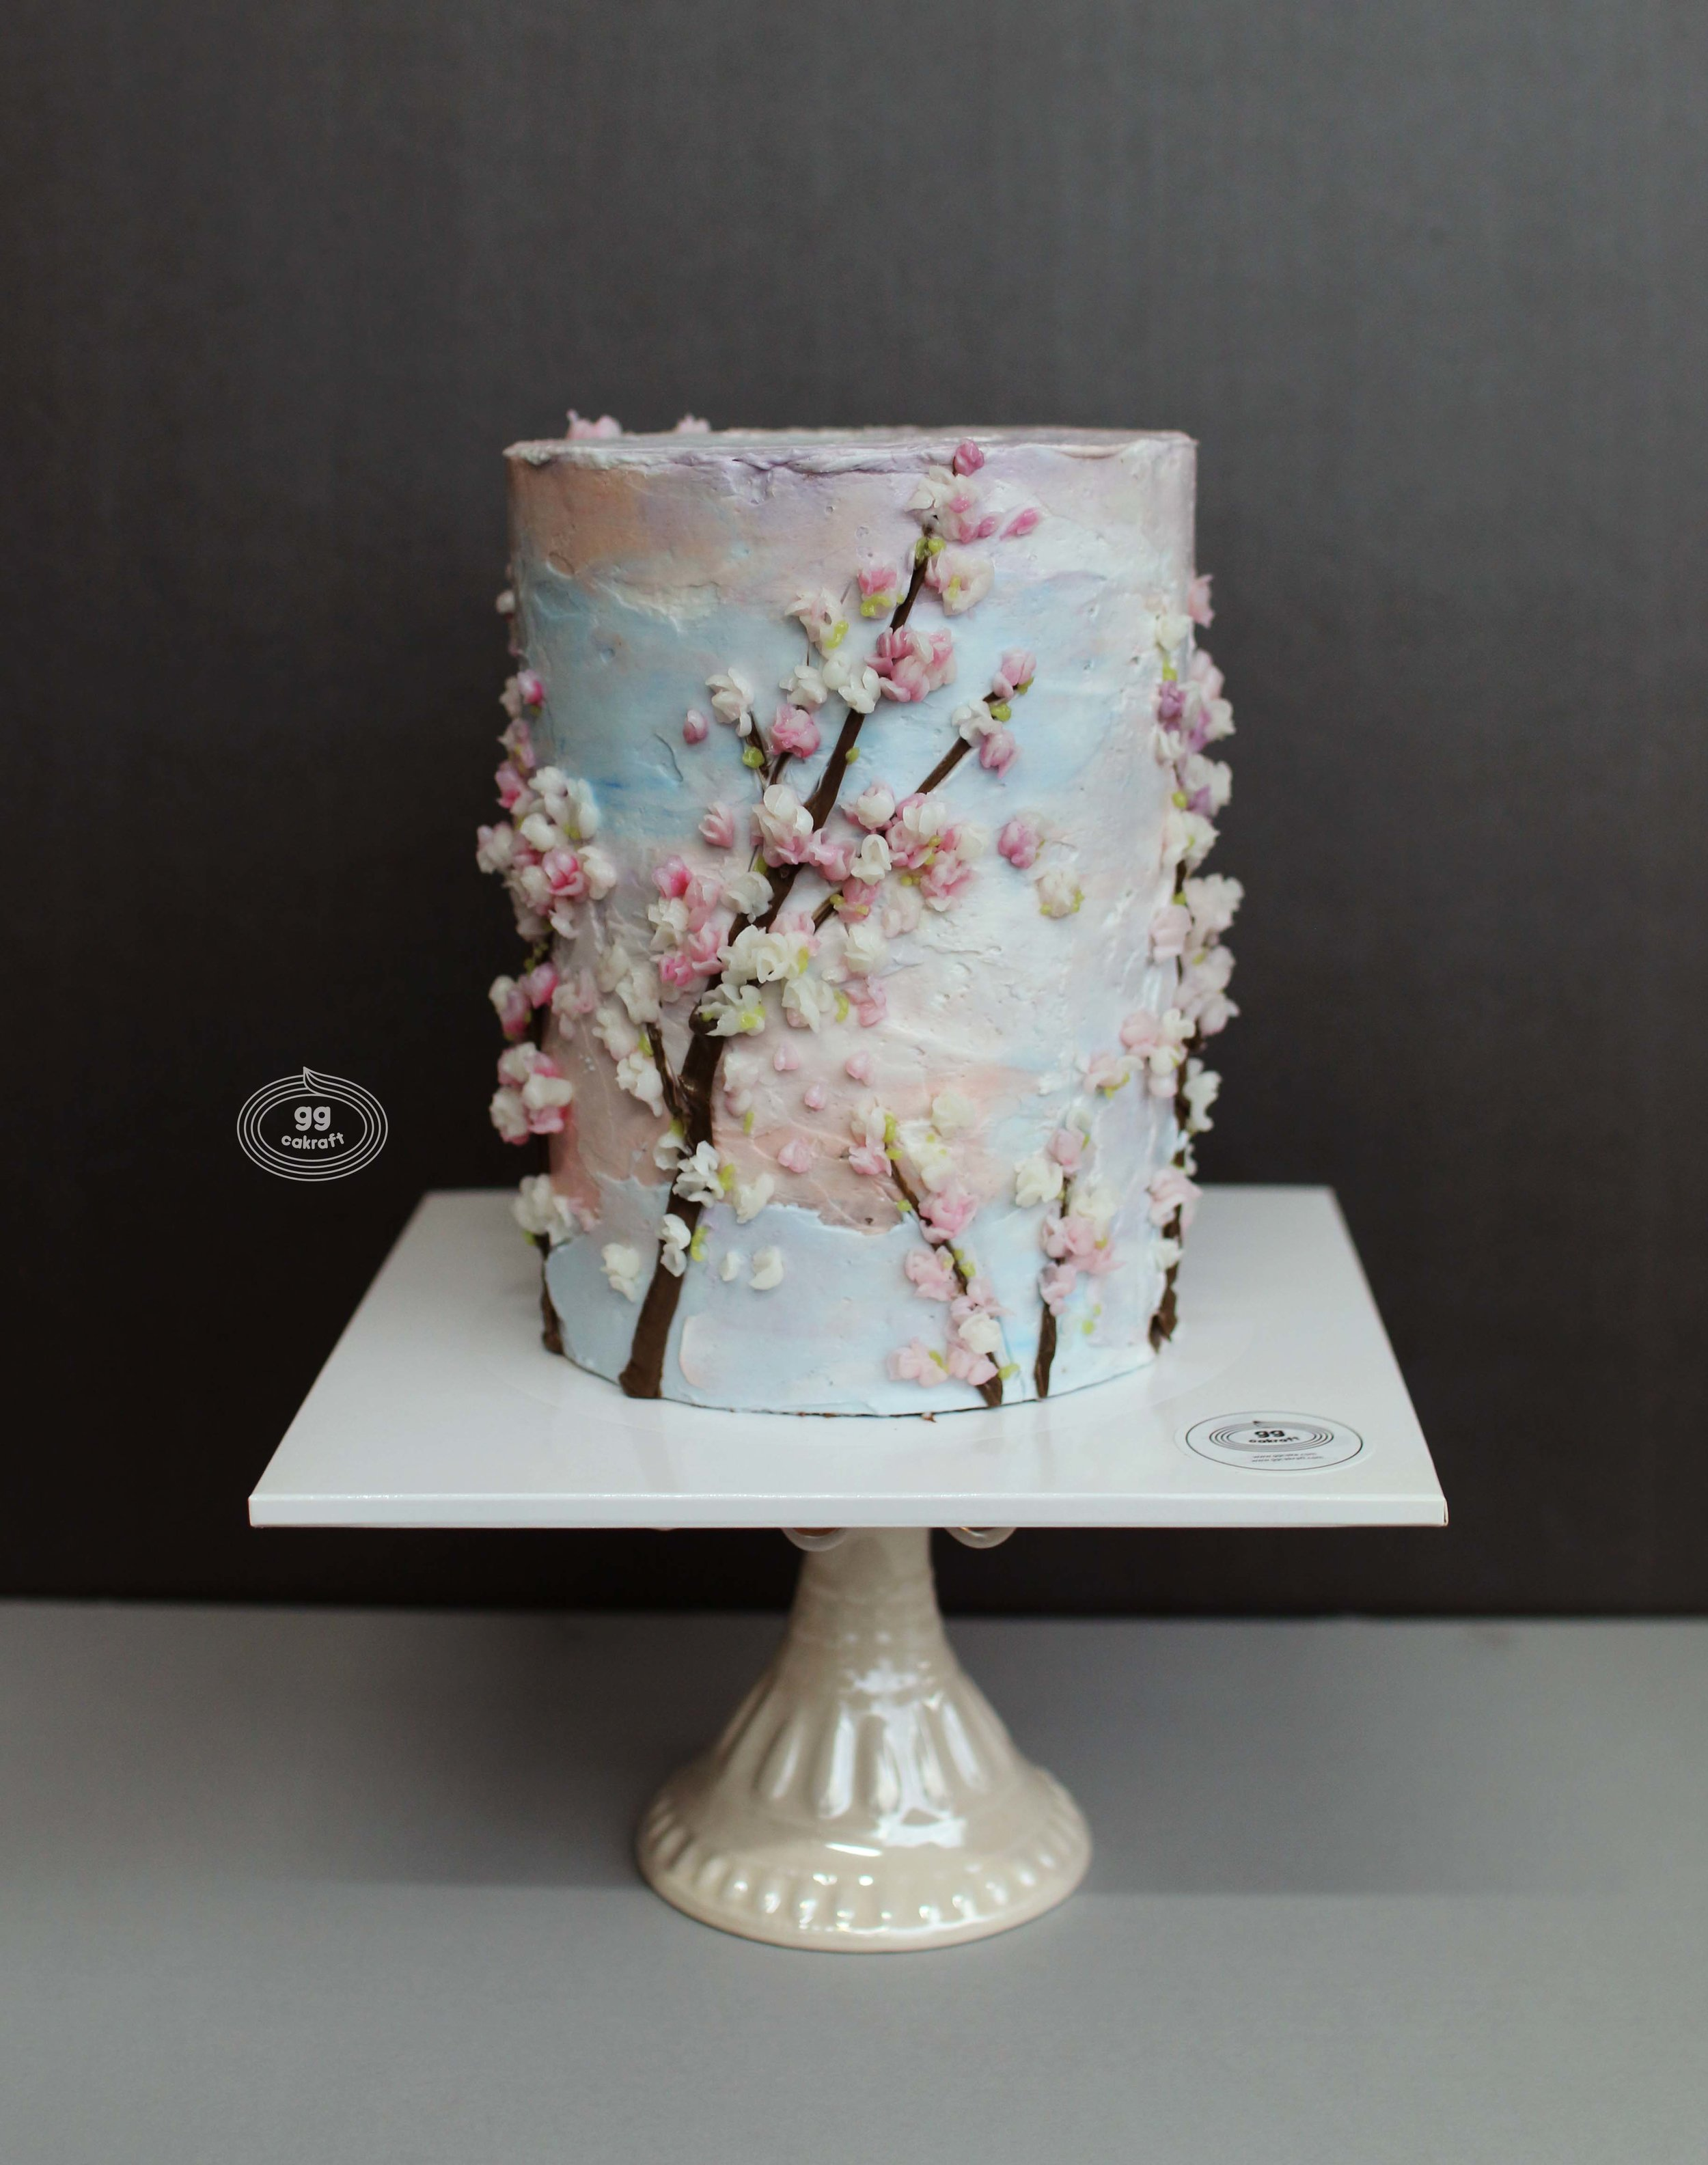 Day 2.  Cherry Blossom drawing cake (Dummy cake)  - Marble icing  - Cherry blossom / branch drawing technique, wafer paper petal.